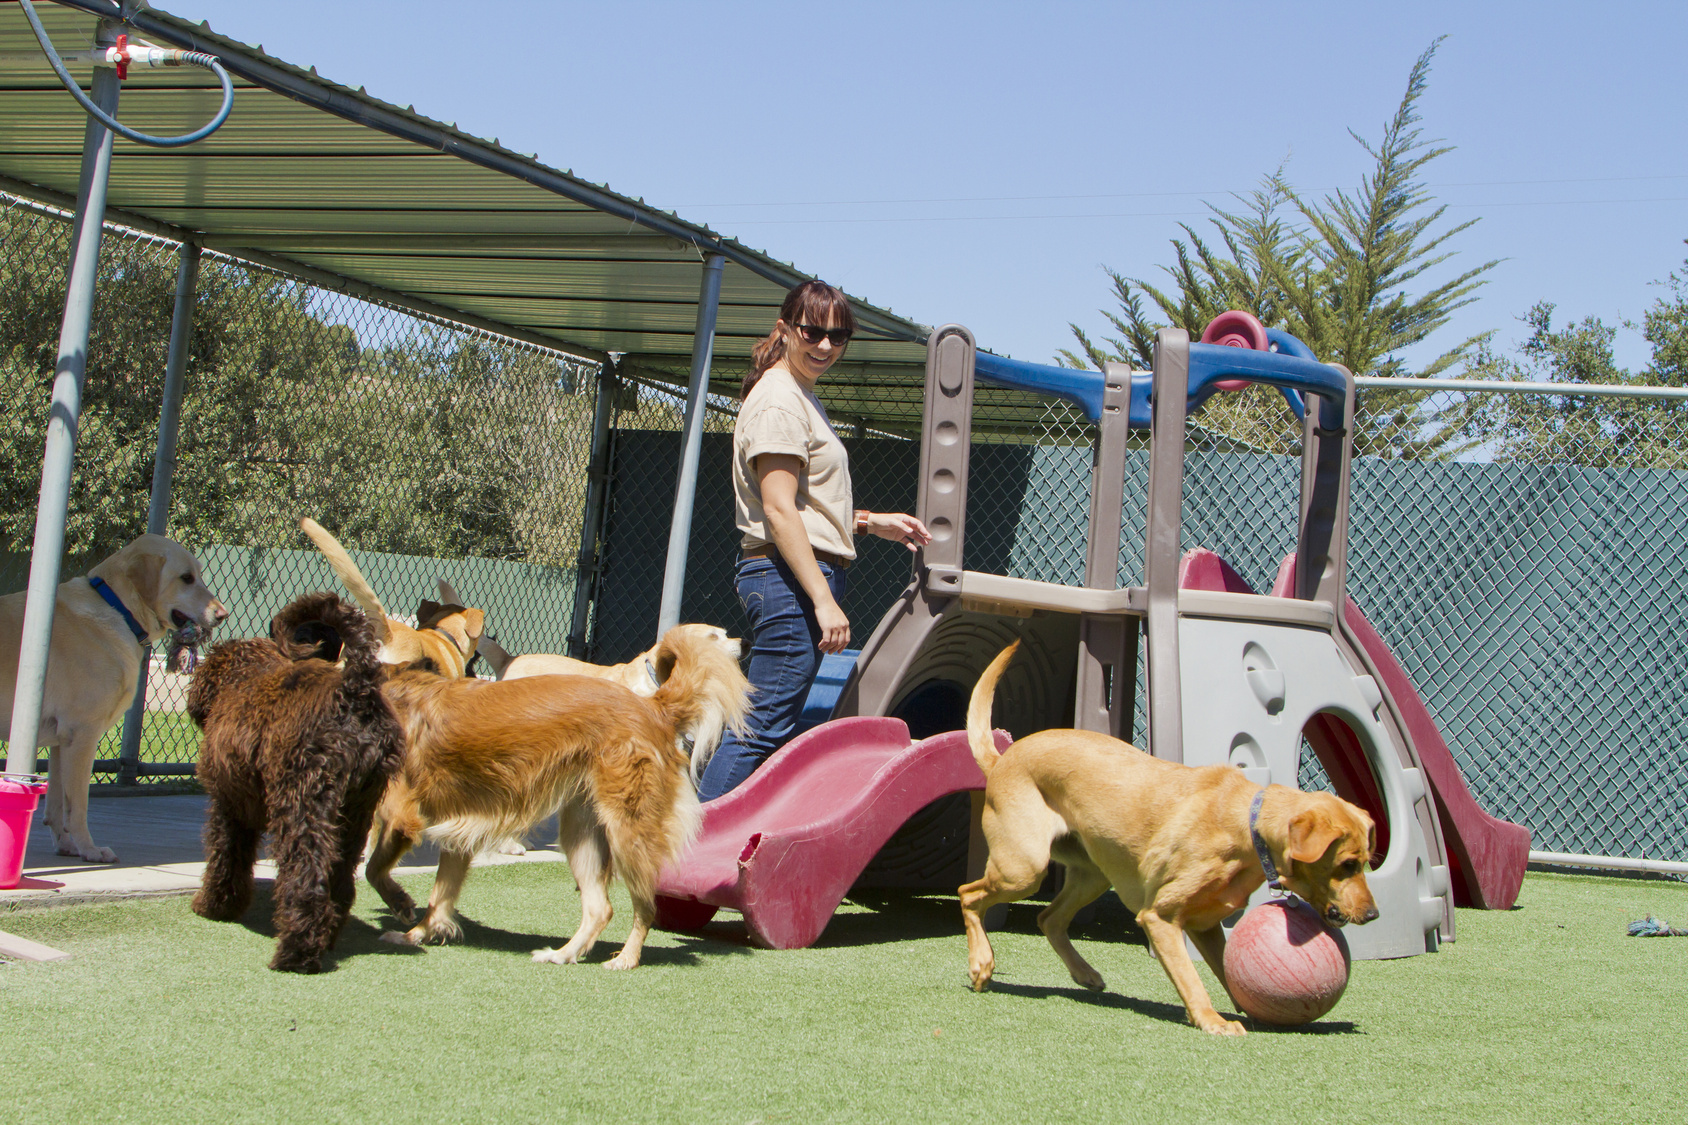 How To Choose The Right Boarding Kennel For Your Pet